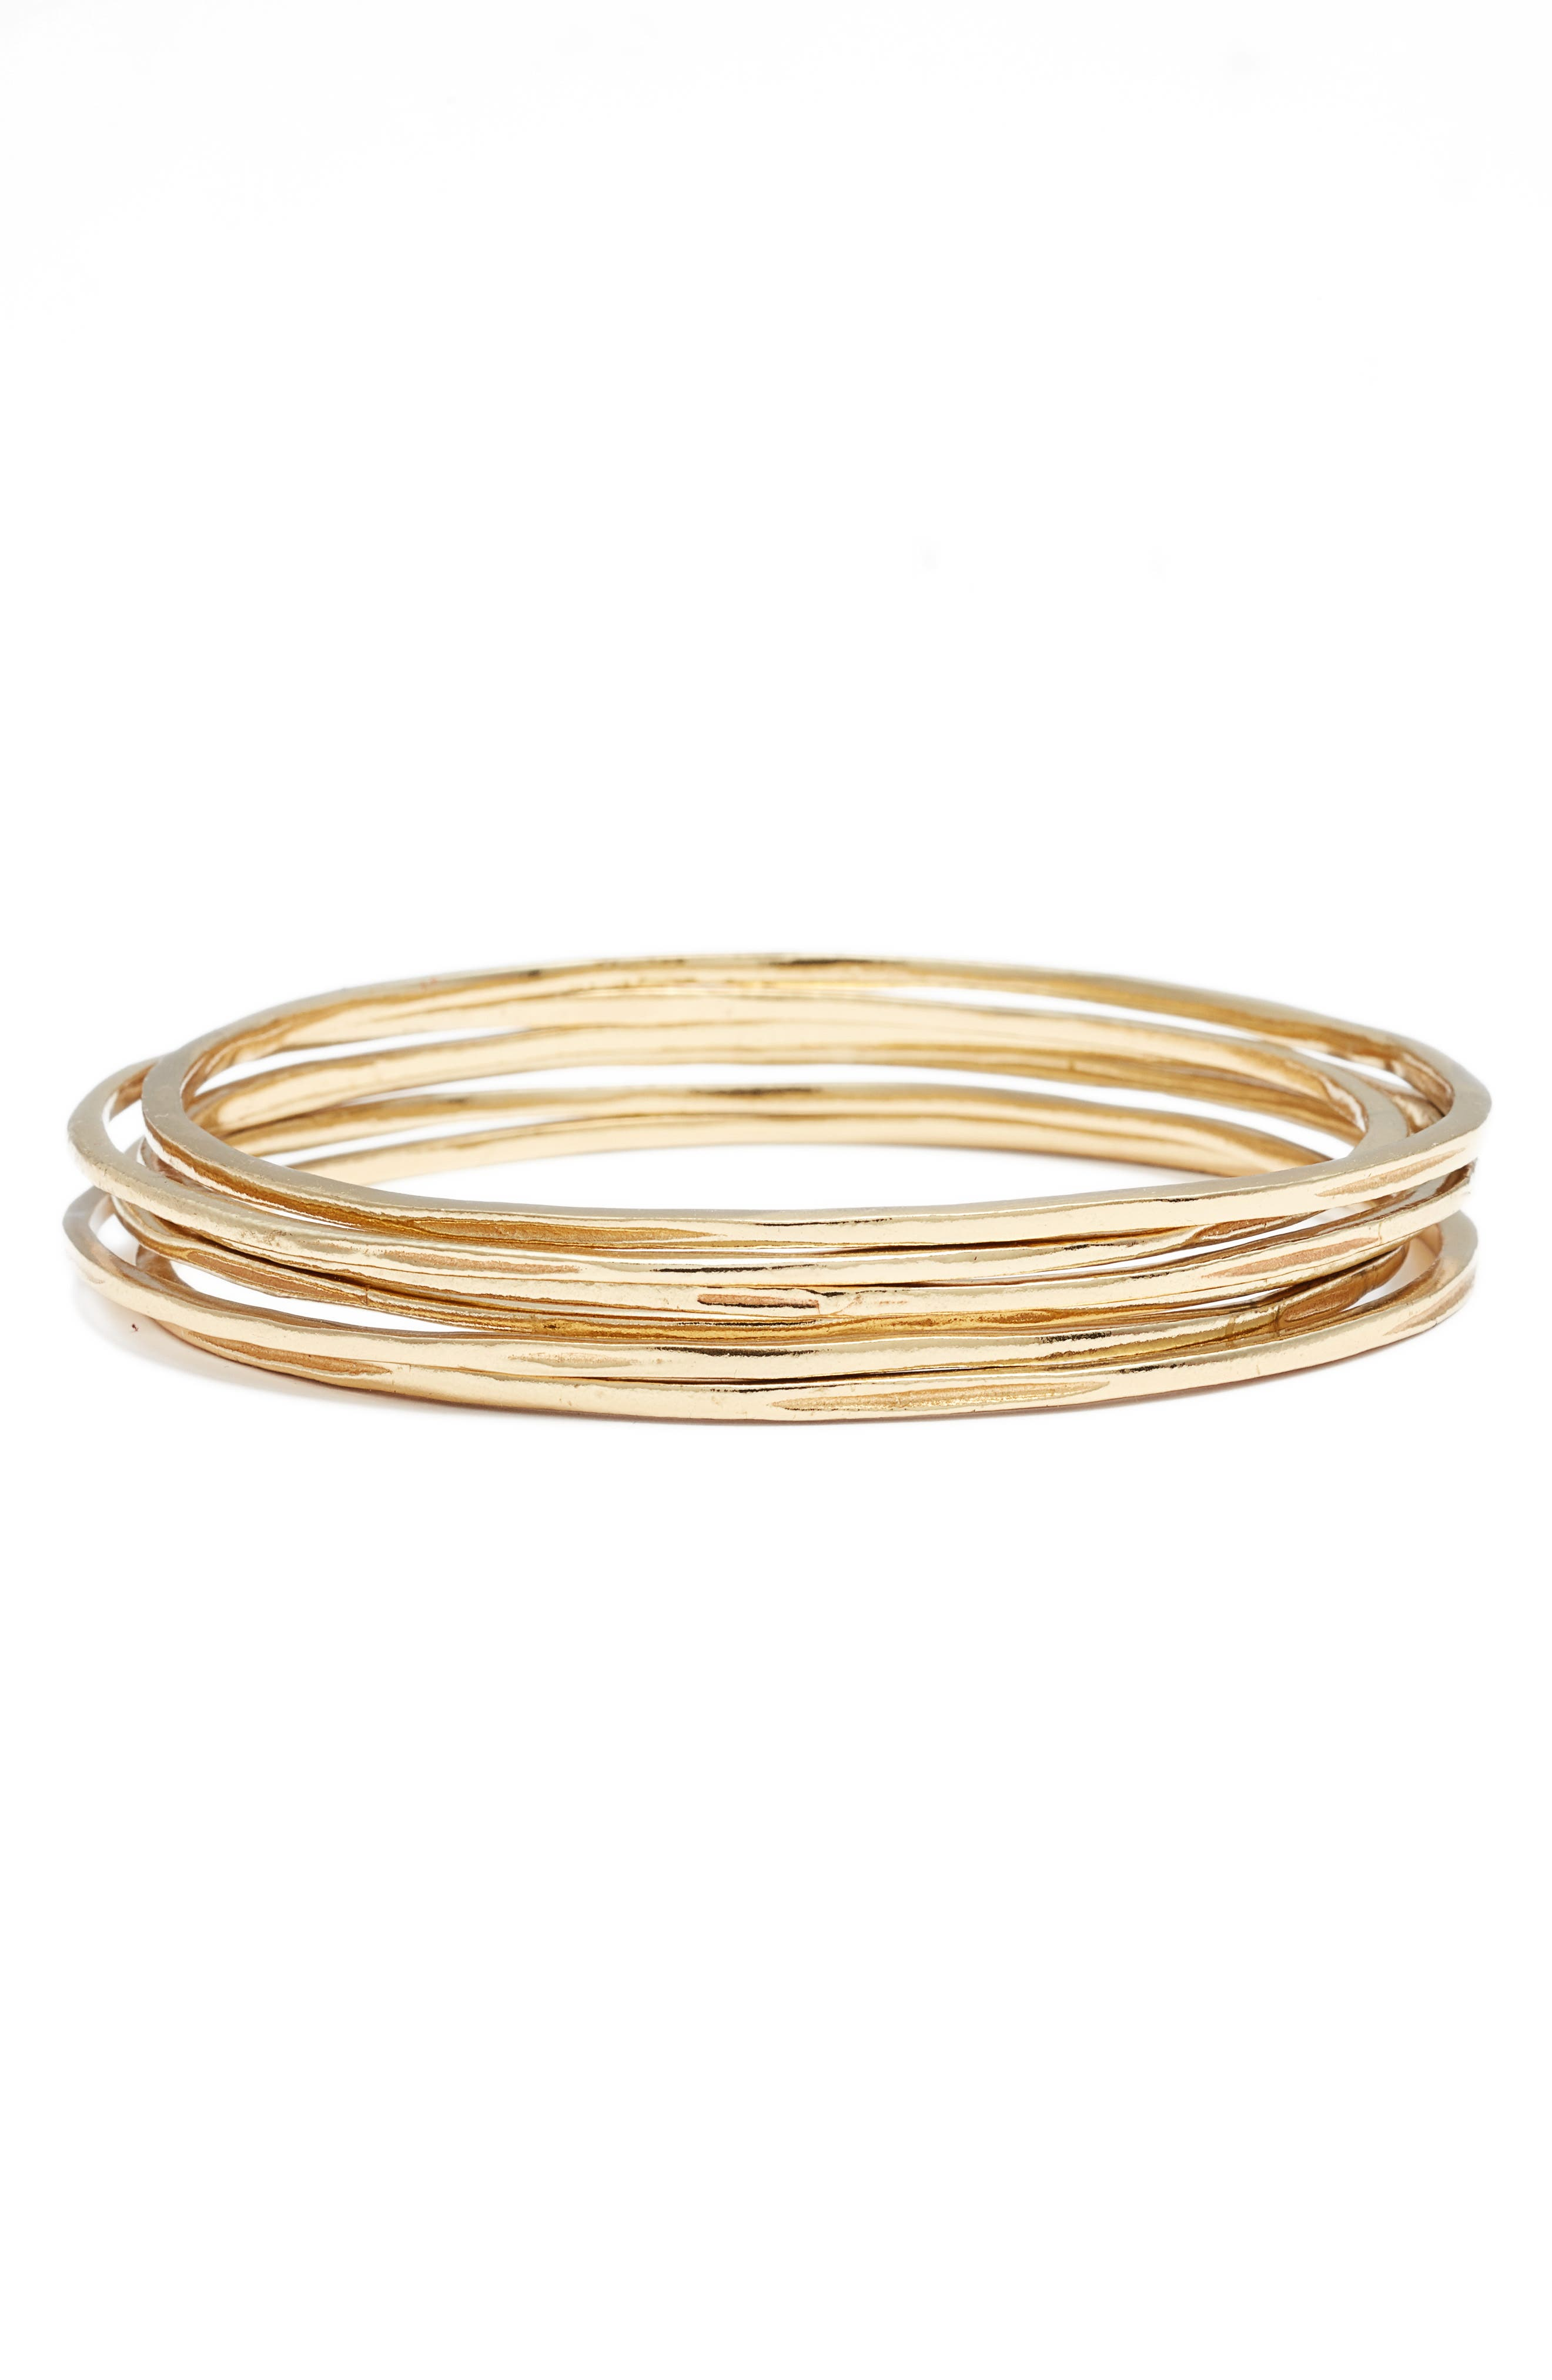 Alternate Image 1 Selected - Ink + Alloy Set of 4 Stackable Bangles